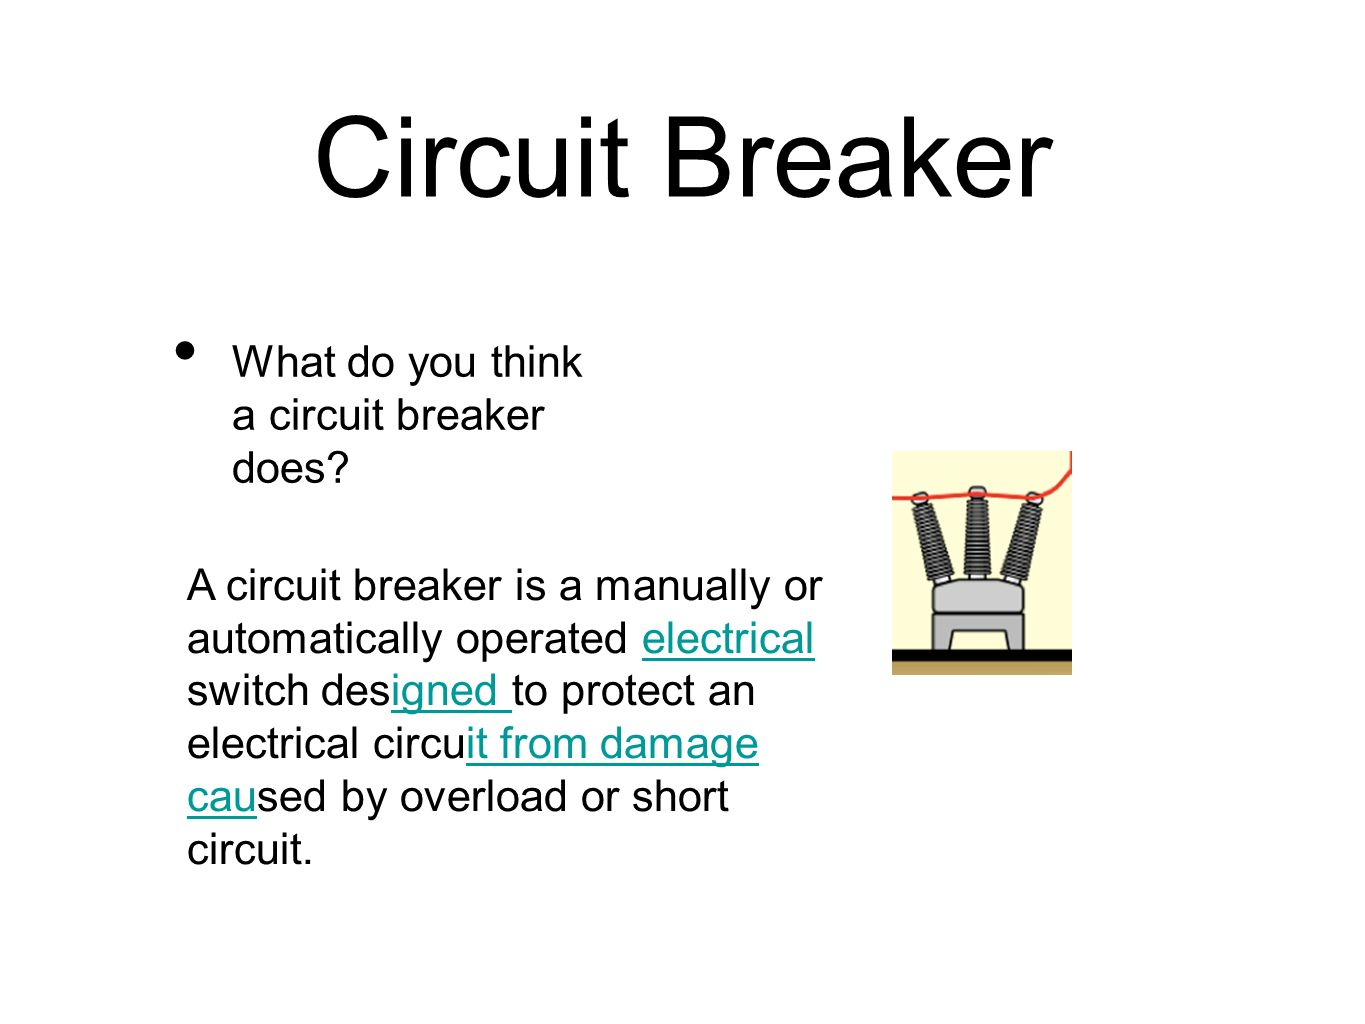 What Makes Substation Work Ppt Video Online Download The Circuit Breaker Is A Switch Designed To Automatically Shut Off 7